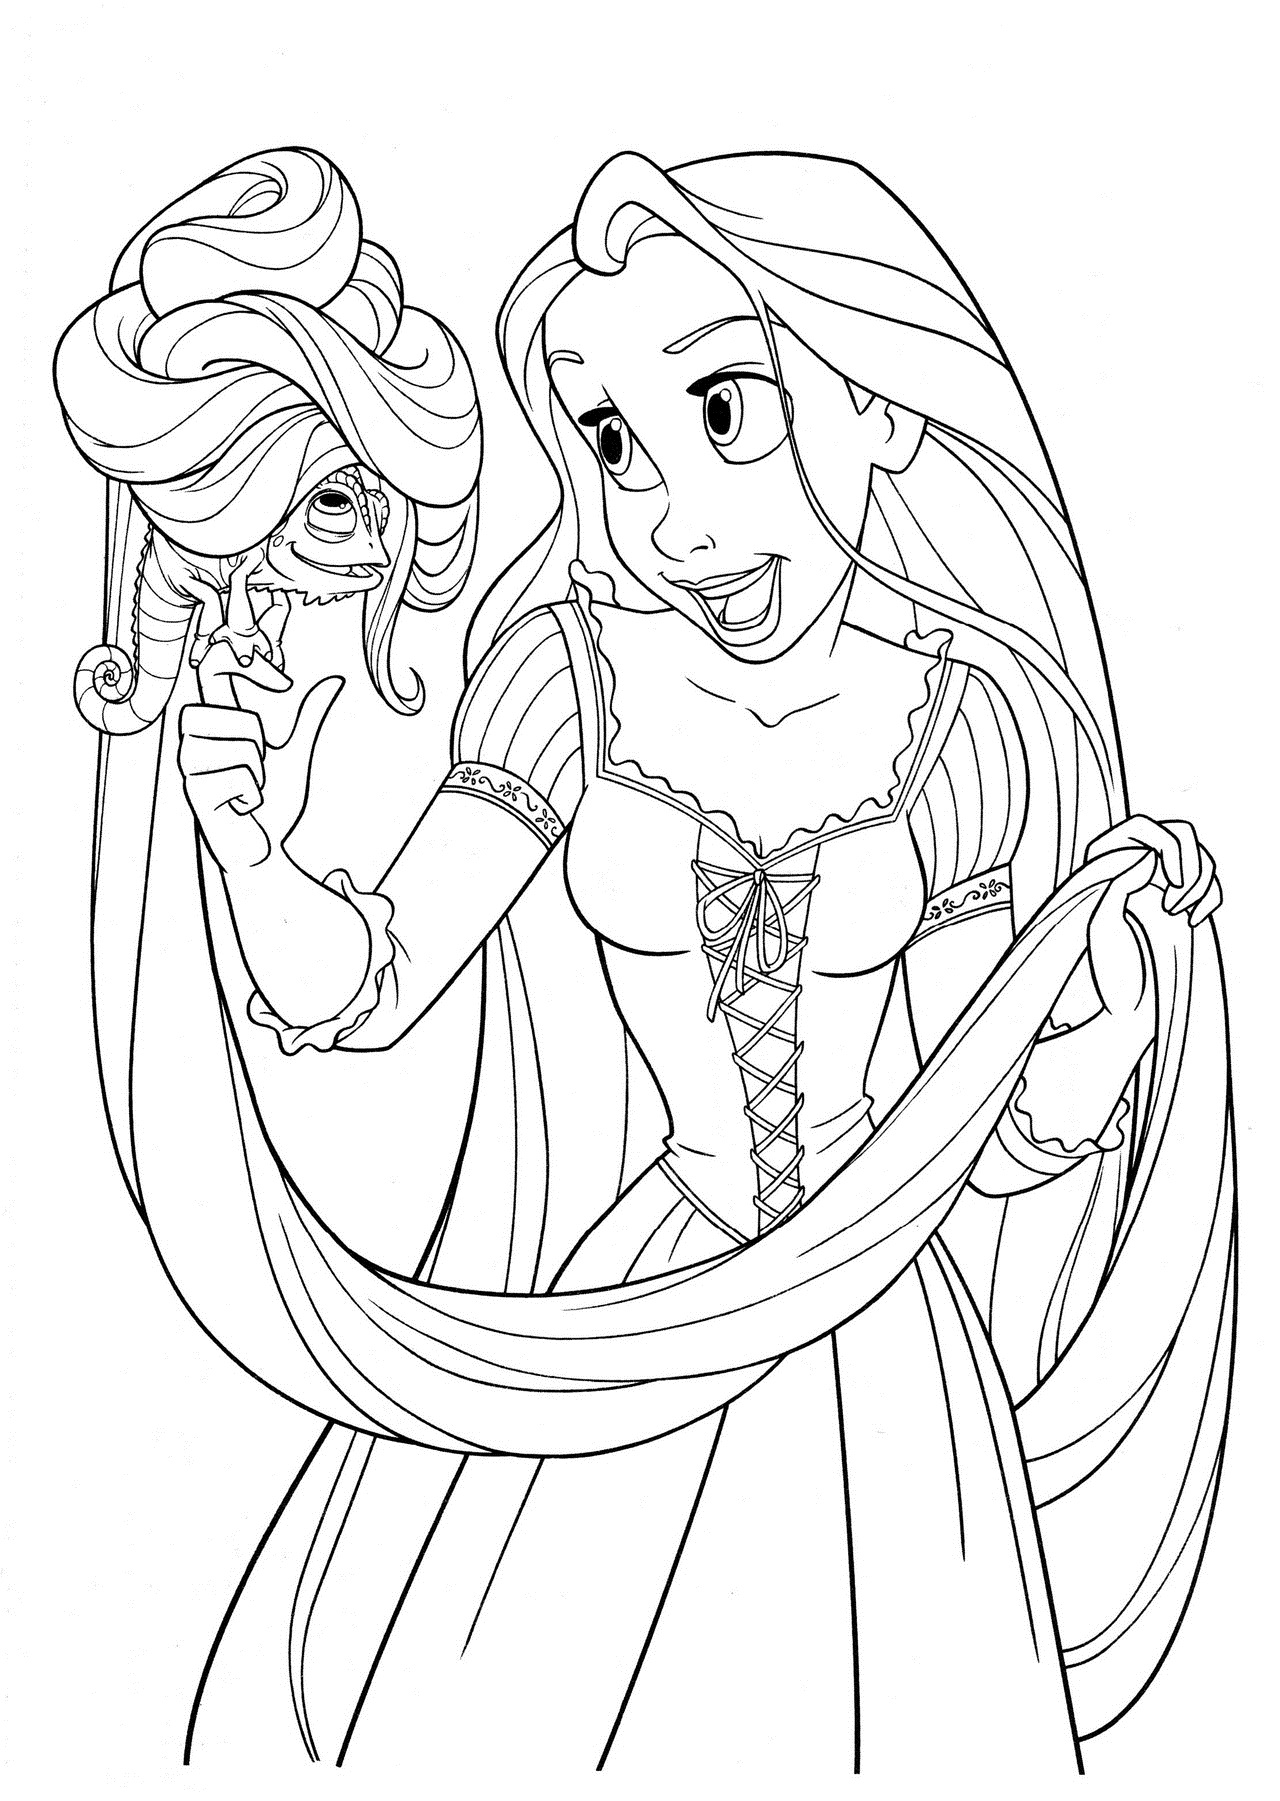 coloring pages onlinw - photo#37